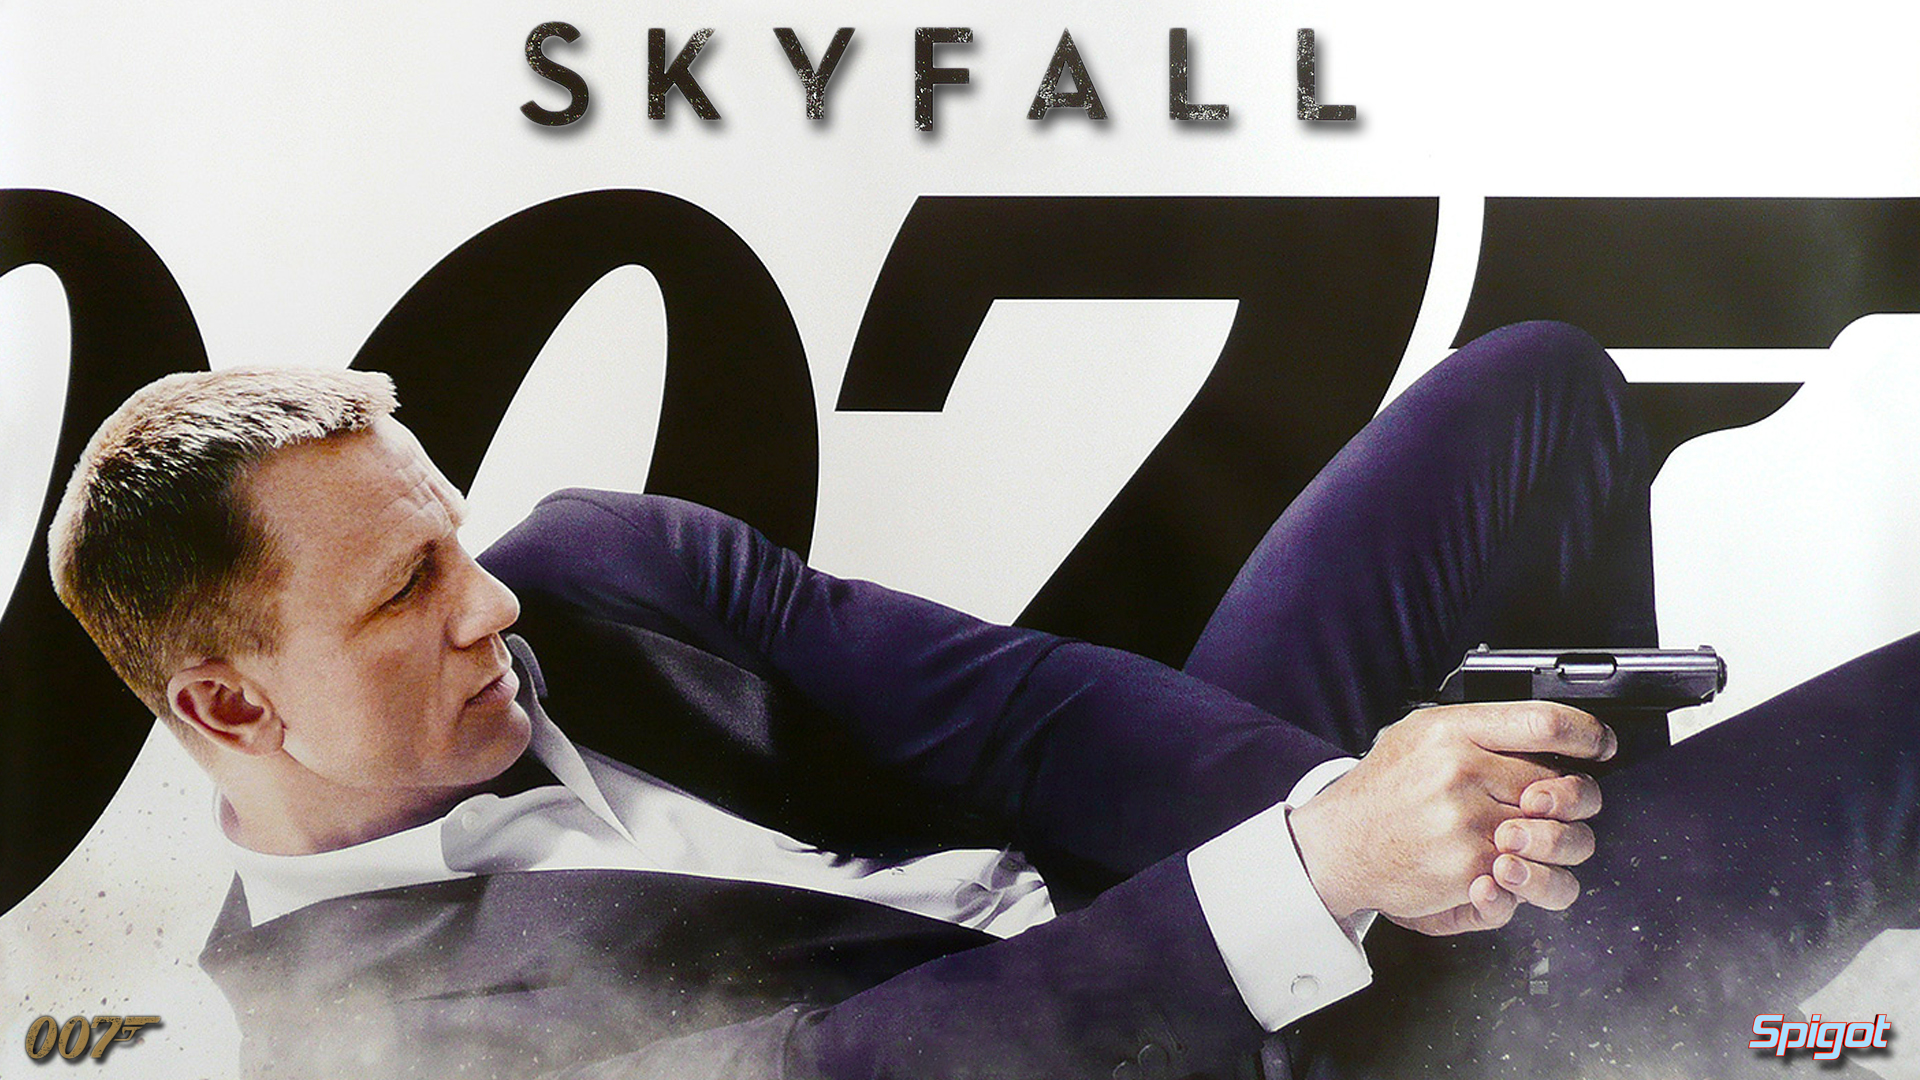 skyfall wallpaper | george spigot's blog